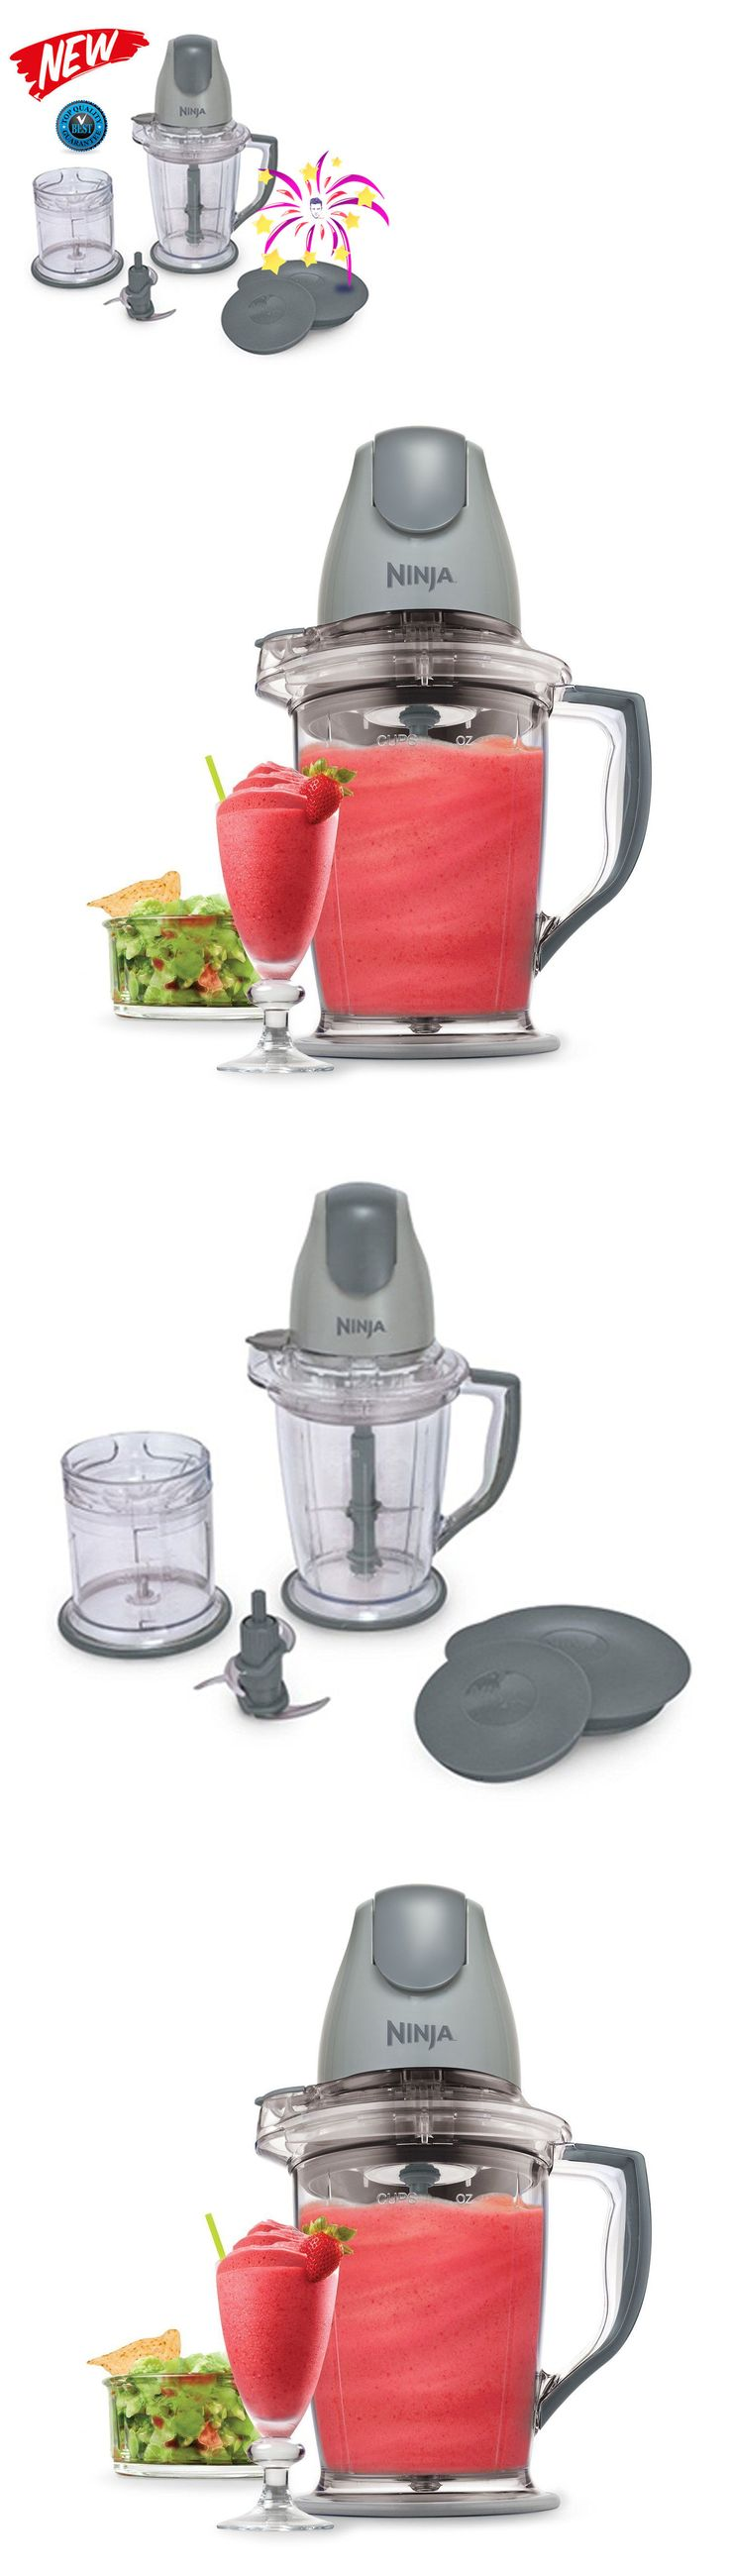 Small Kitchen Appliances: Ninja Master Prep Blender Food Processor Chopper Drink Mixer Smoothie Maker BUY IT NOW ONLY: $37.44